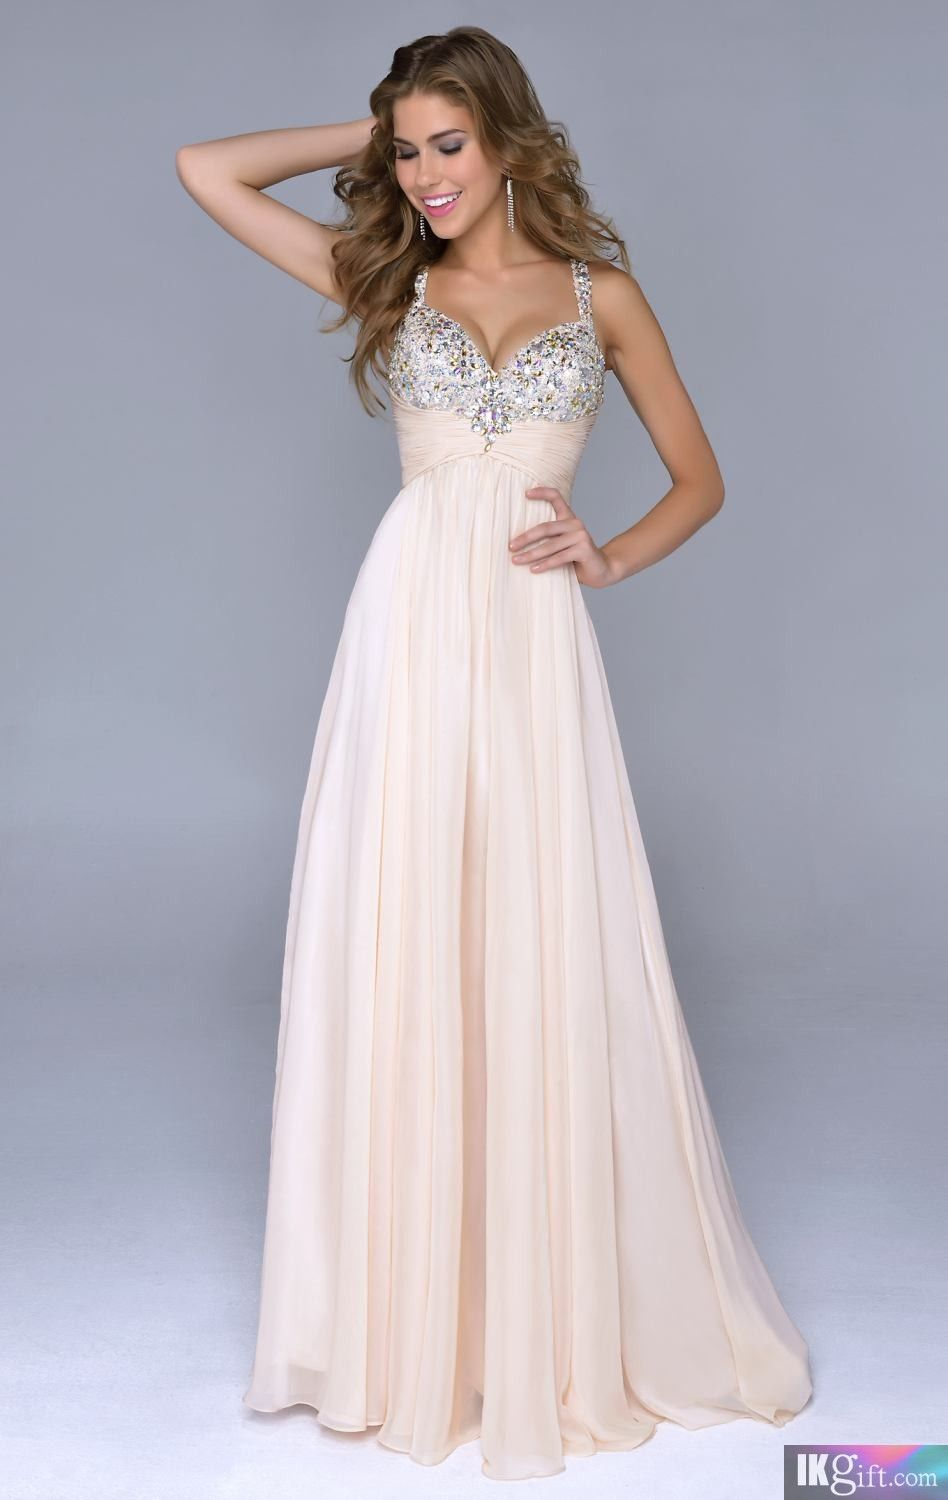 Prom Dress Prom Dresses Prom Pinterest Prom dresses Dresses